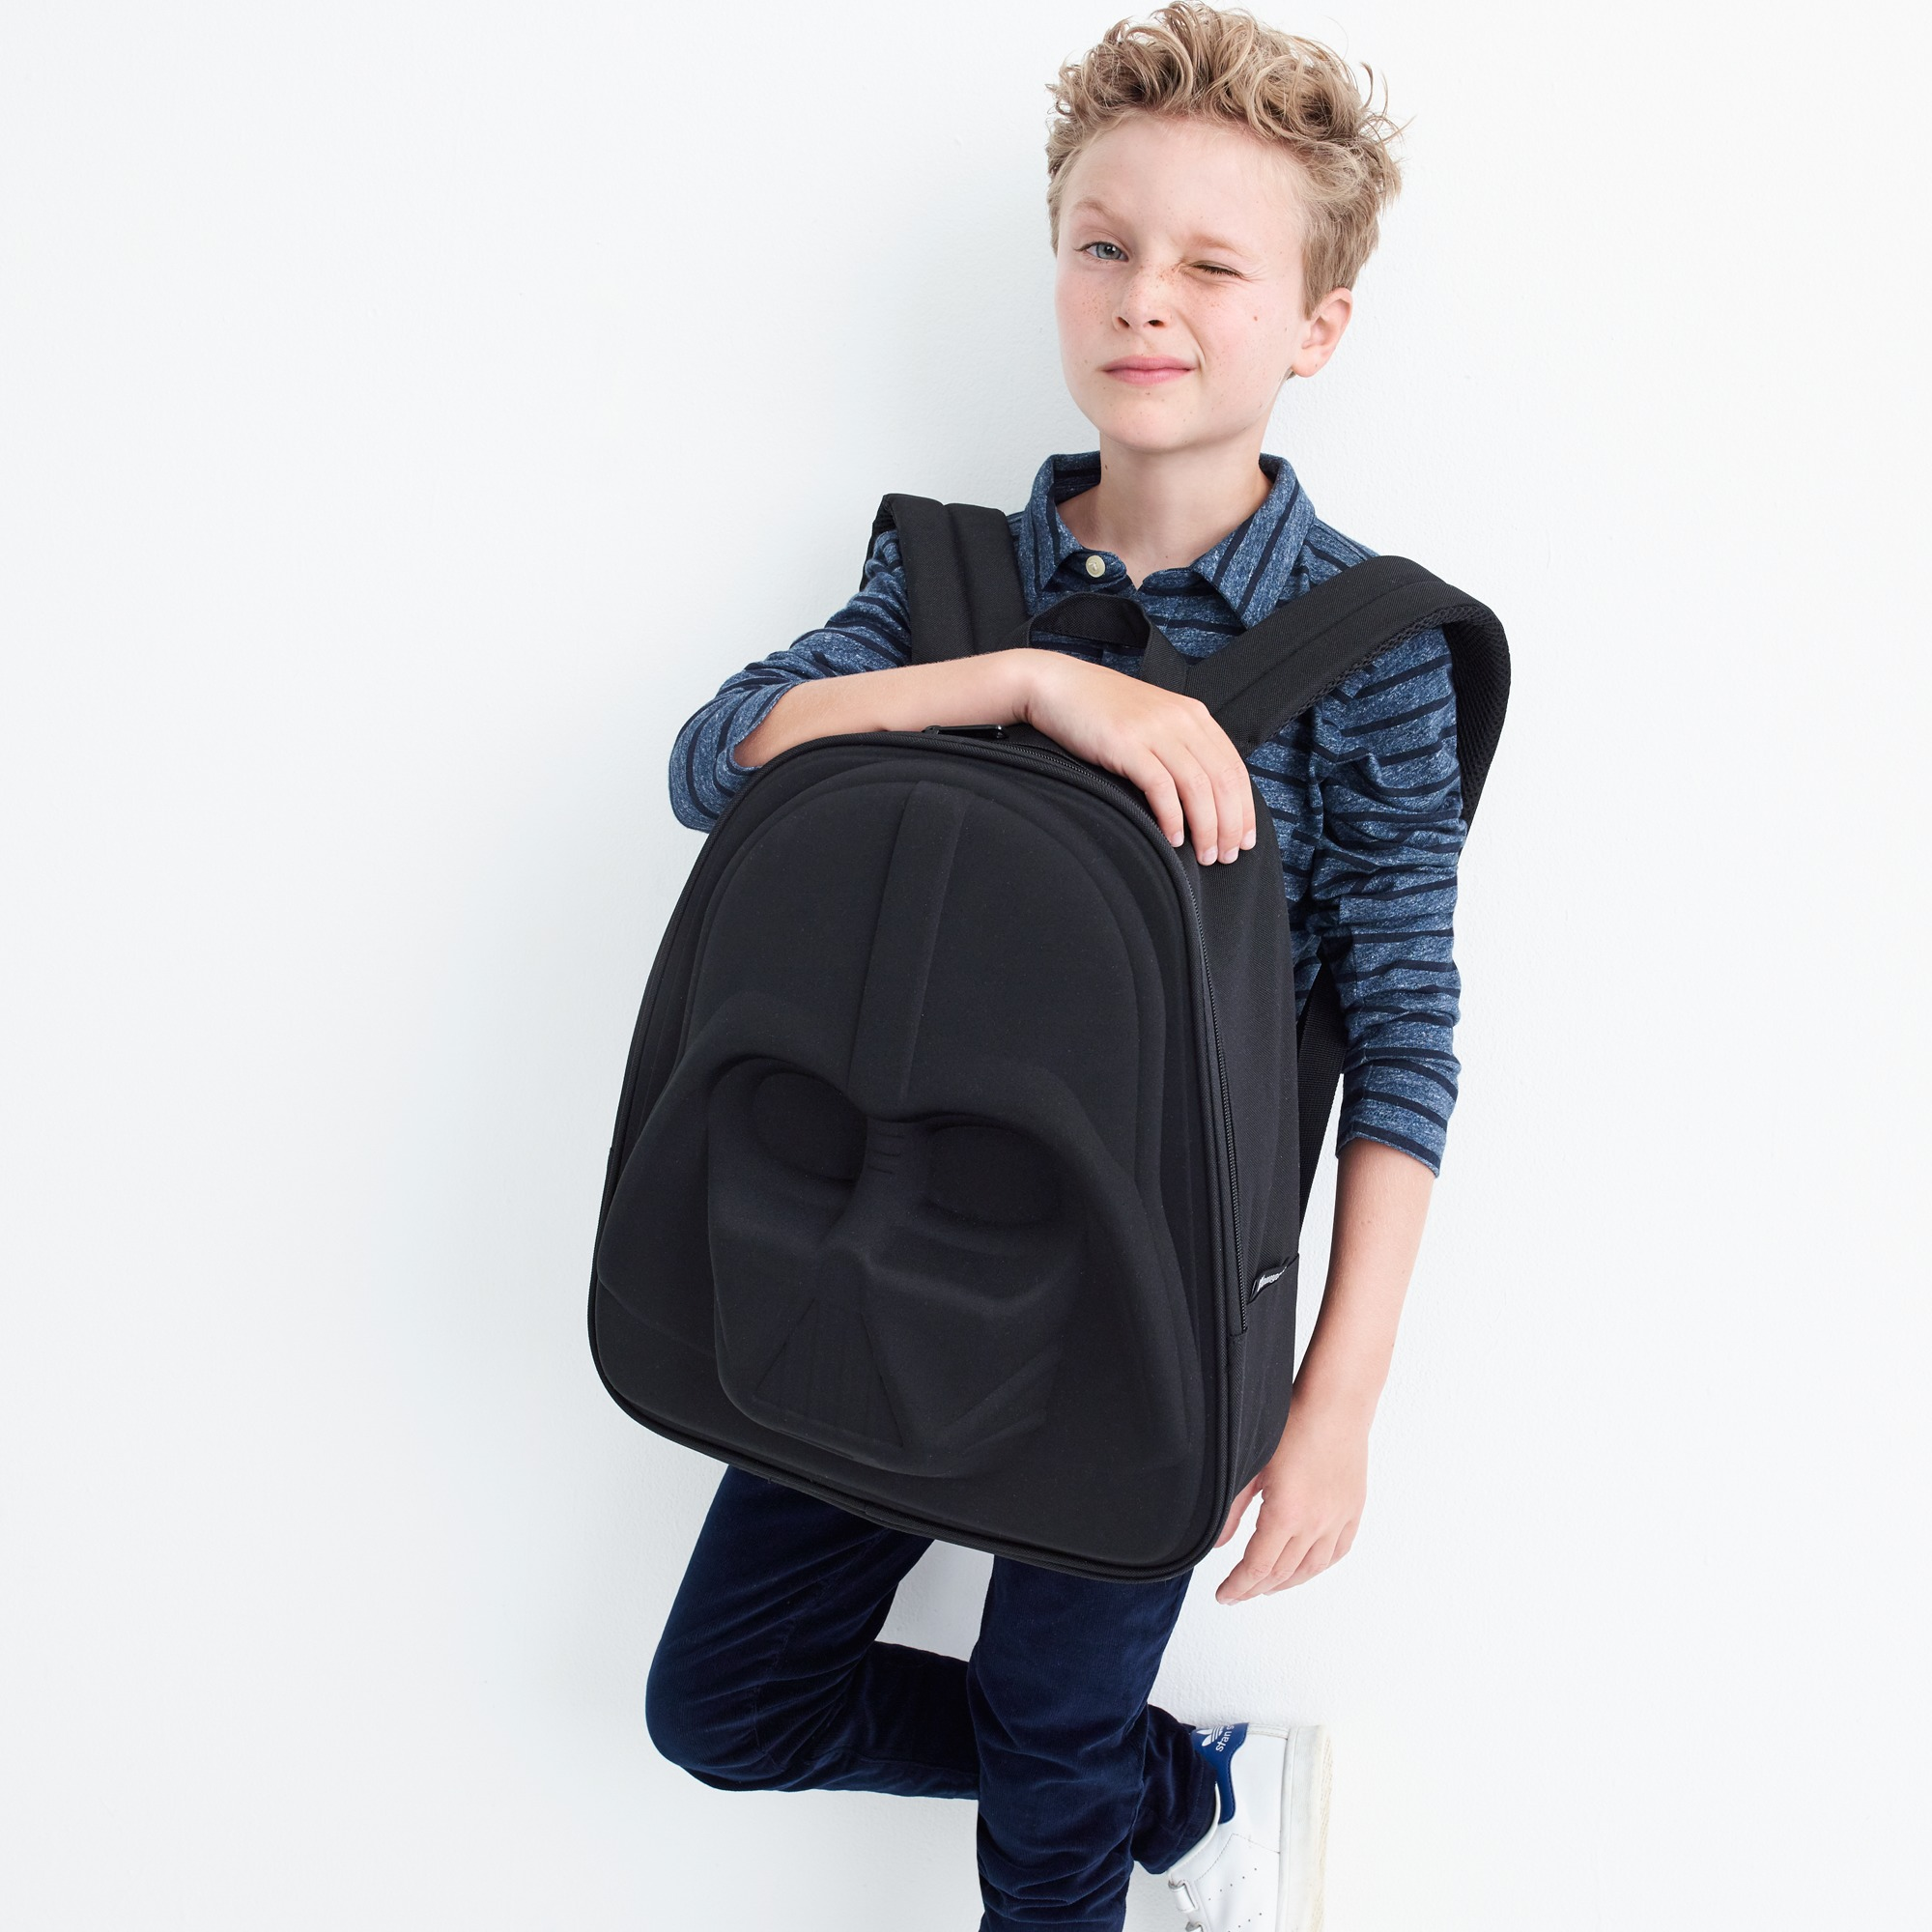 Kids' Star Wars ™ for crewcuts Darth Vader backpack boy j.crew in good company c